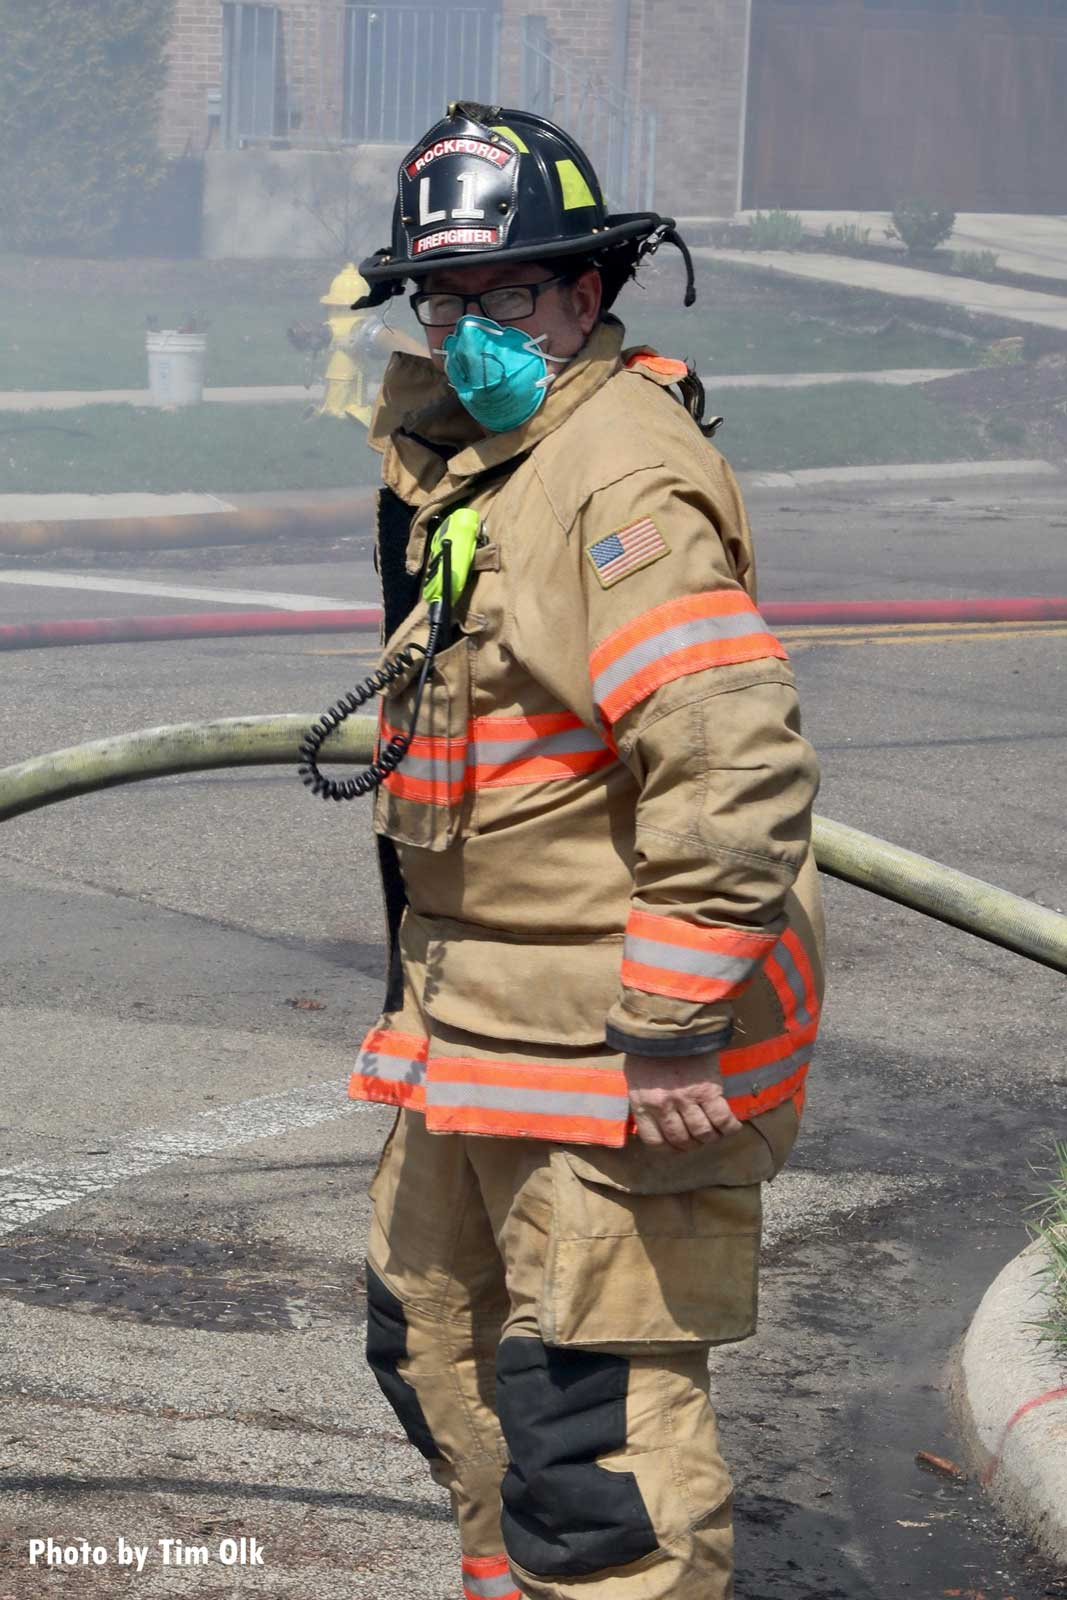 Firefighter wearing a mask in the time of the coronavirus pandemic